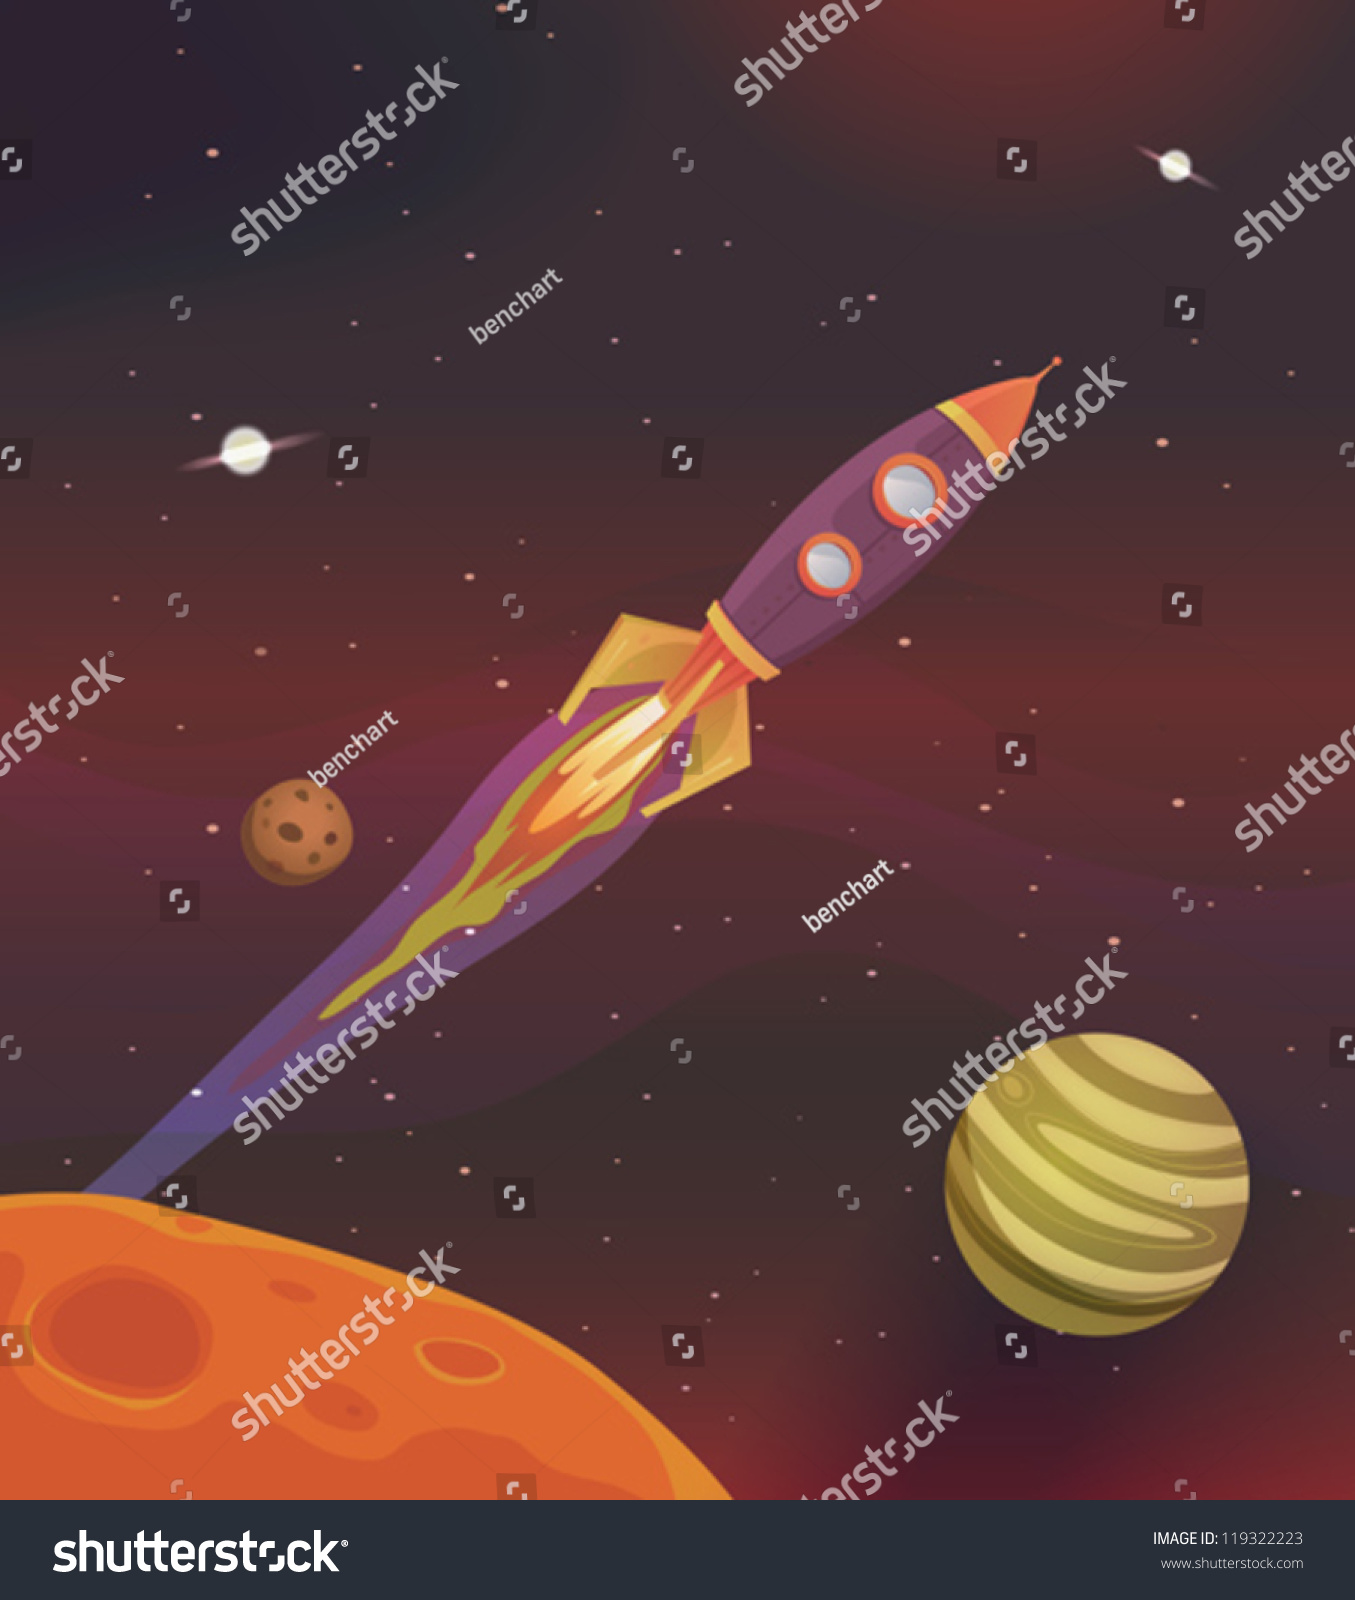 galaxies planets and stars cartoons - photo #29